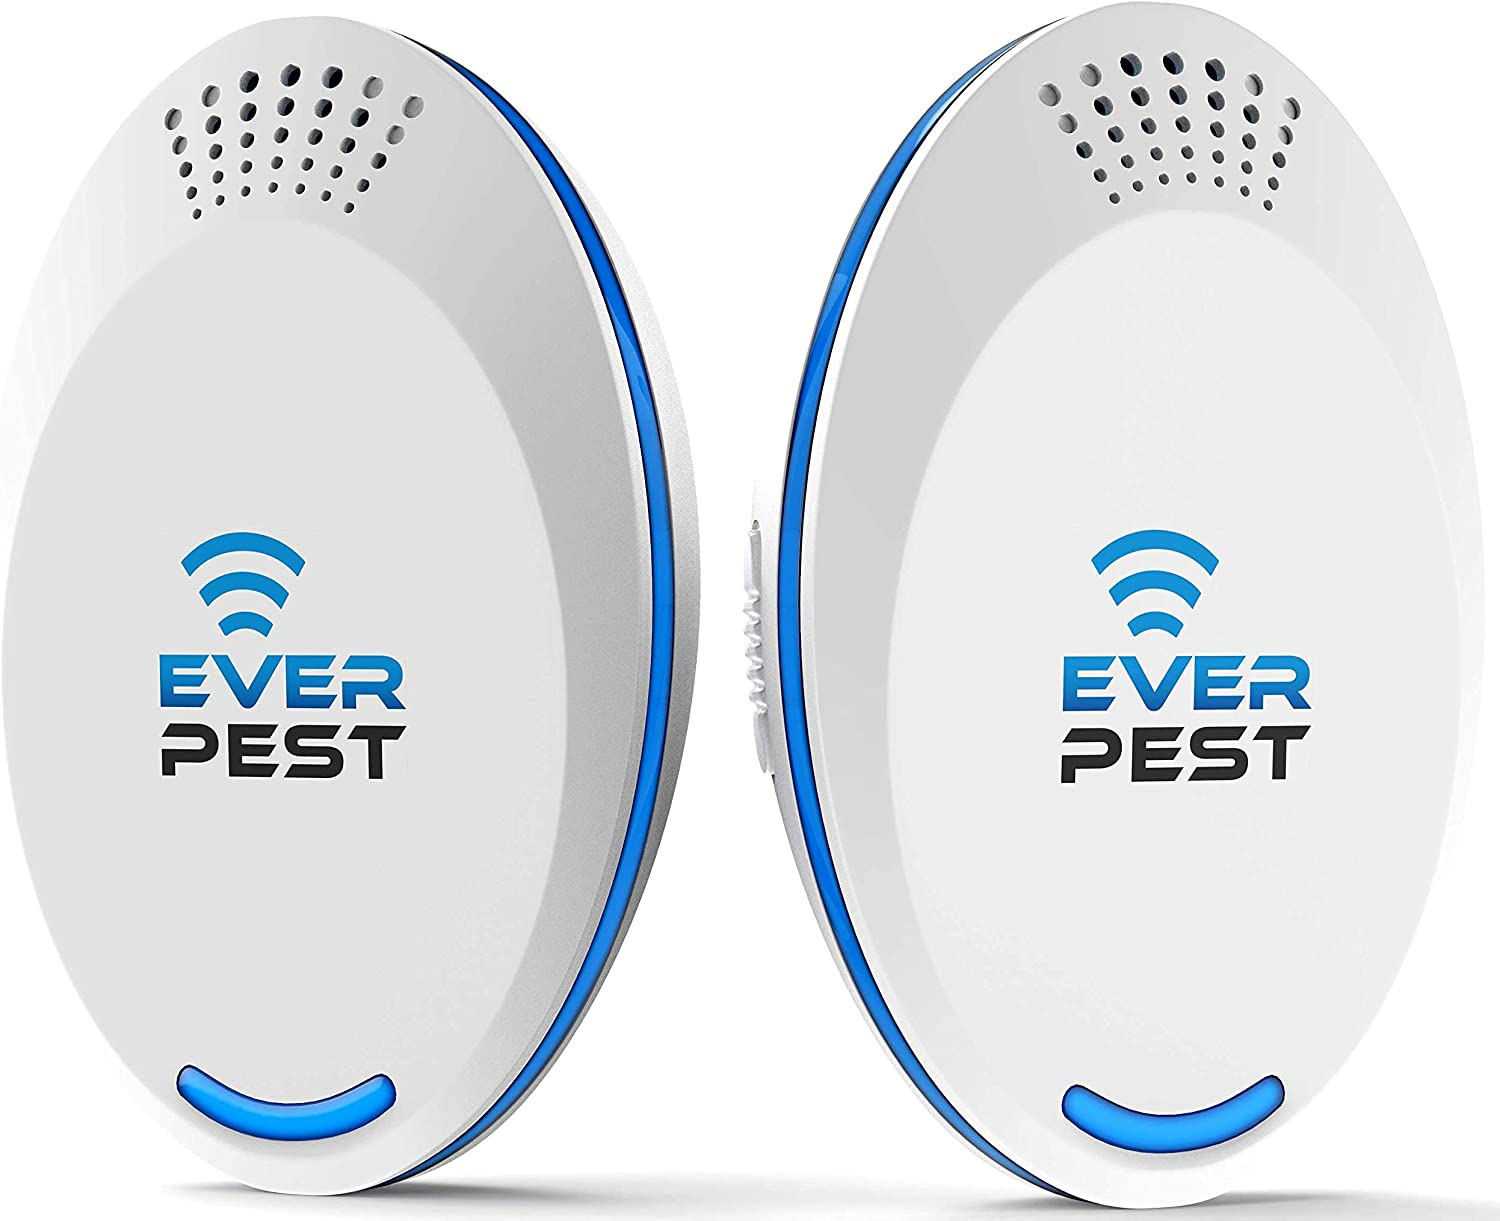 Ultrasonic Pest Repellent Control 2021 (2-Pack), Plug in Home, Flea, Rats, Roaches, Cockroaches, Fruit Fly, Rodent, Insect, Indoor and Outdoor Repeller, Get Rid of Mosquito, Ants, Mouse Bugs Mice